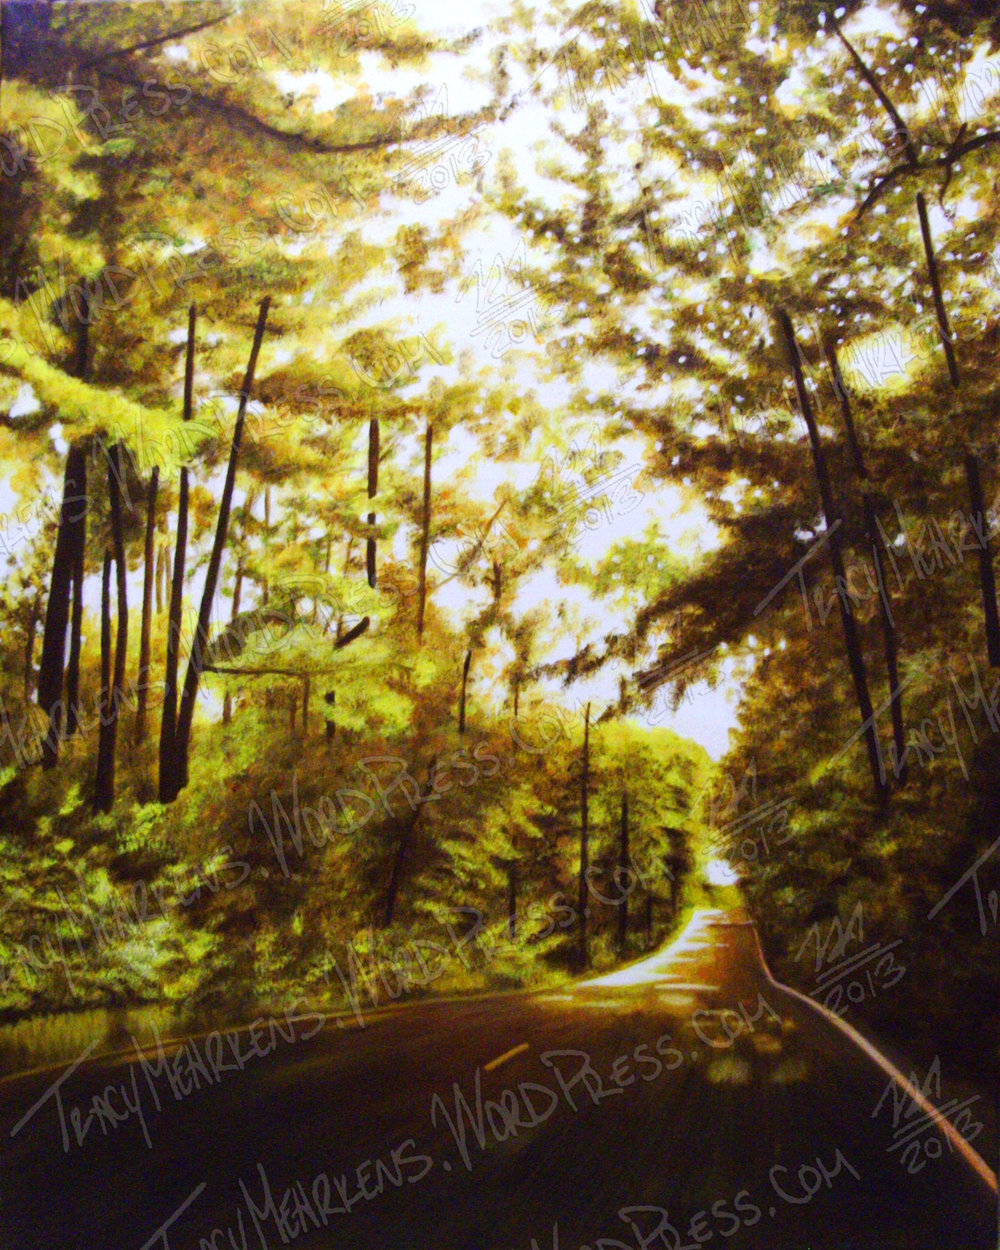 Copy of The Hallowed Road. Oil on Canvas. 24x30 in. 2013.